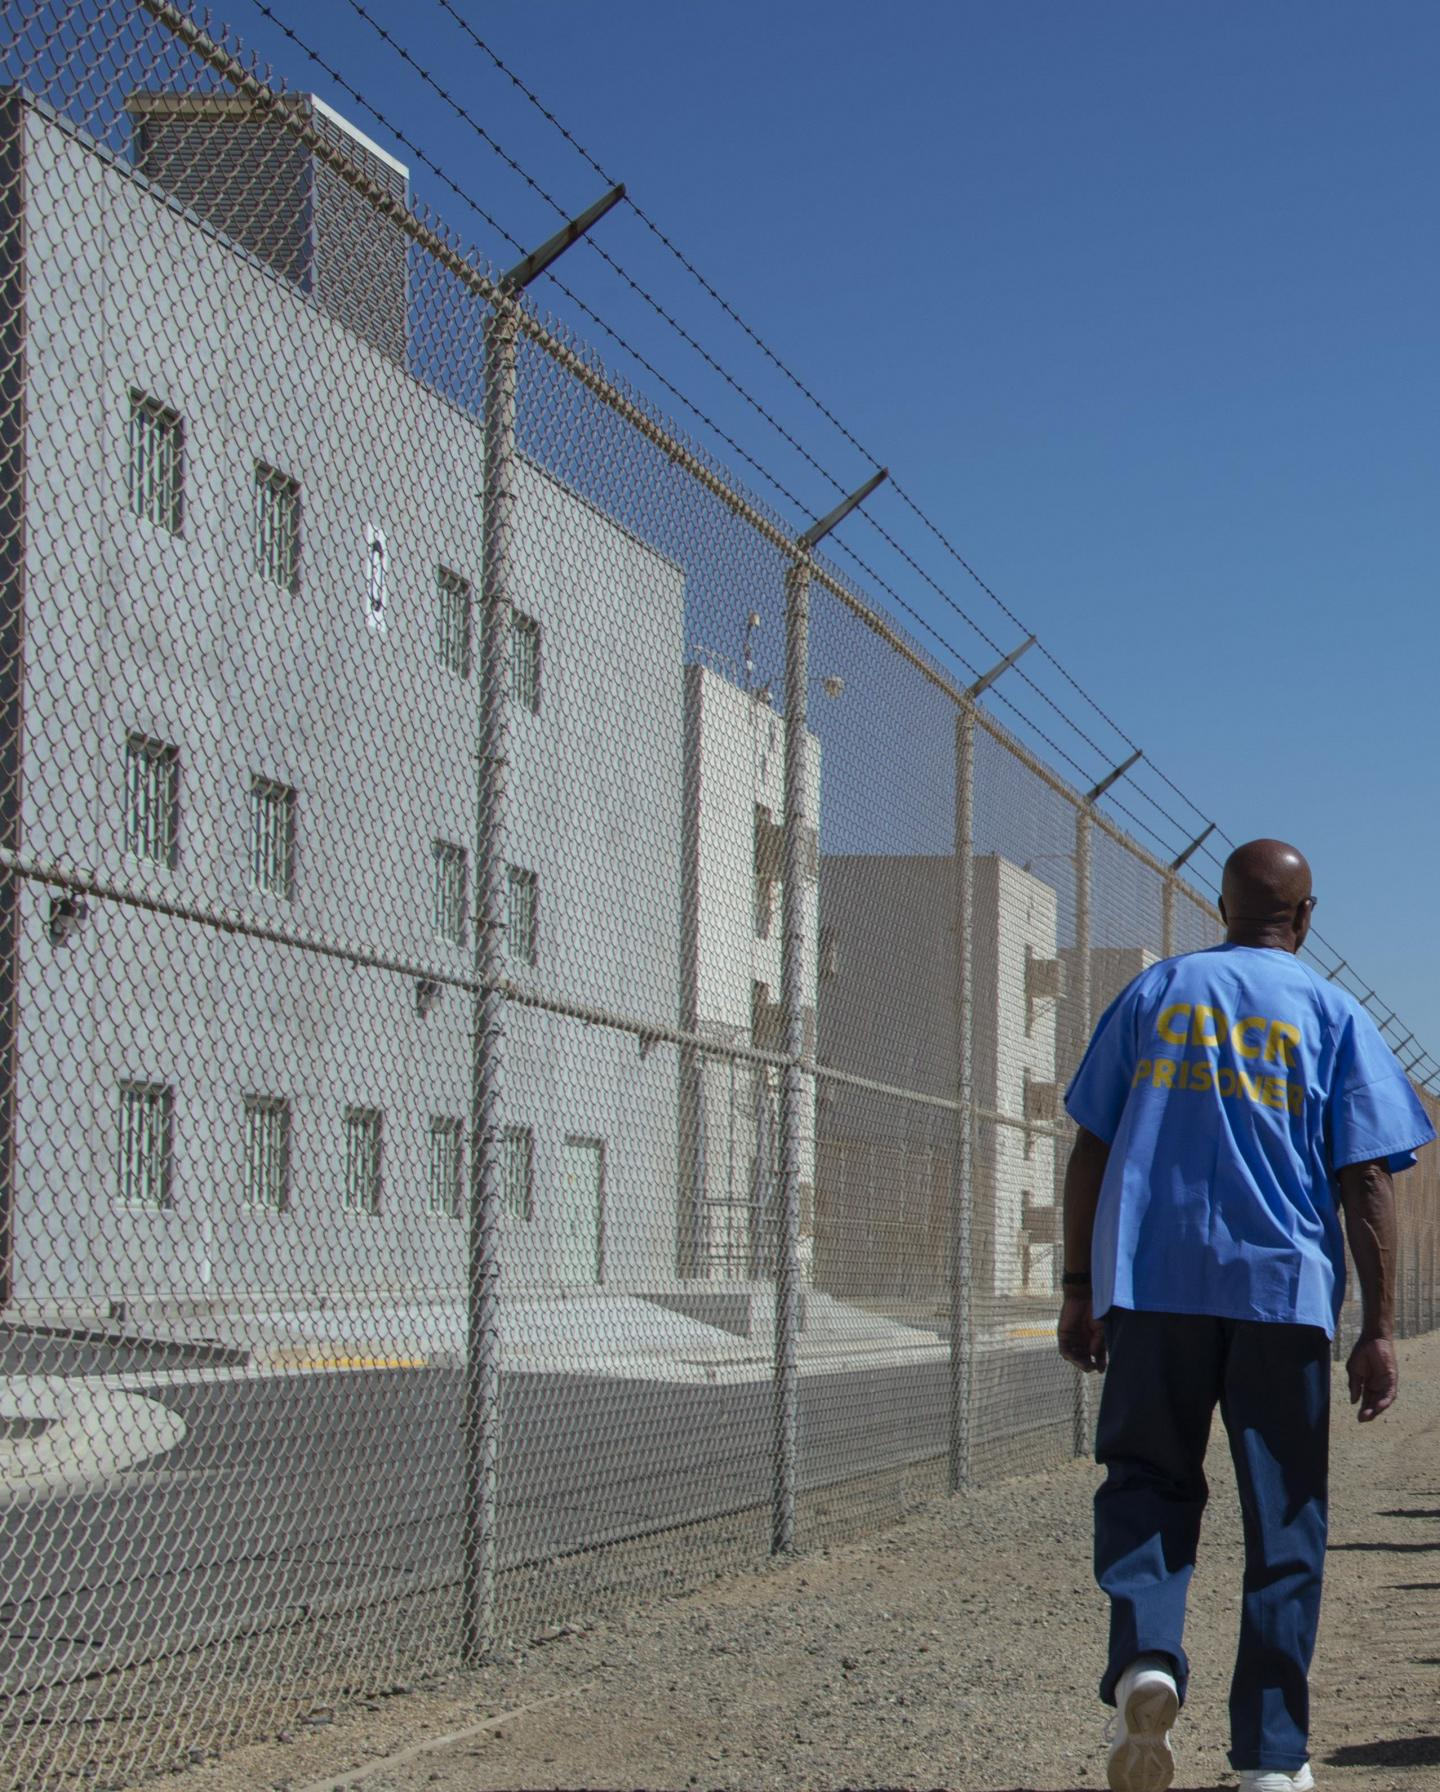 Retention in HIV Care Drops After Release From Incarceration